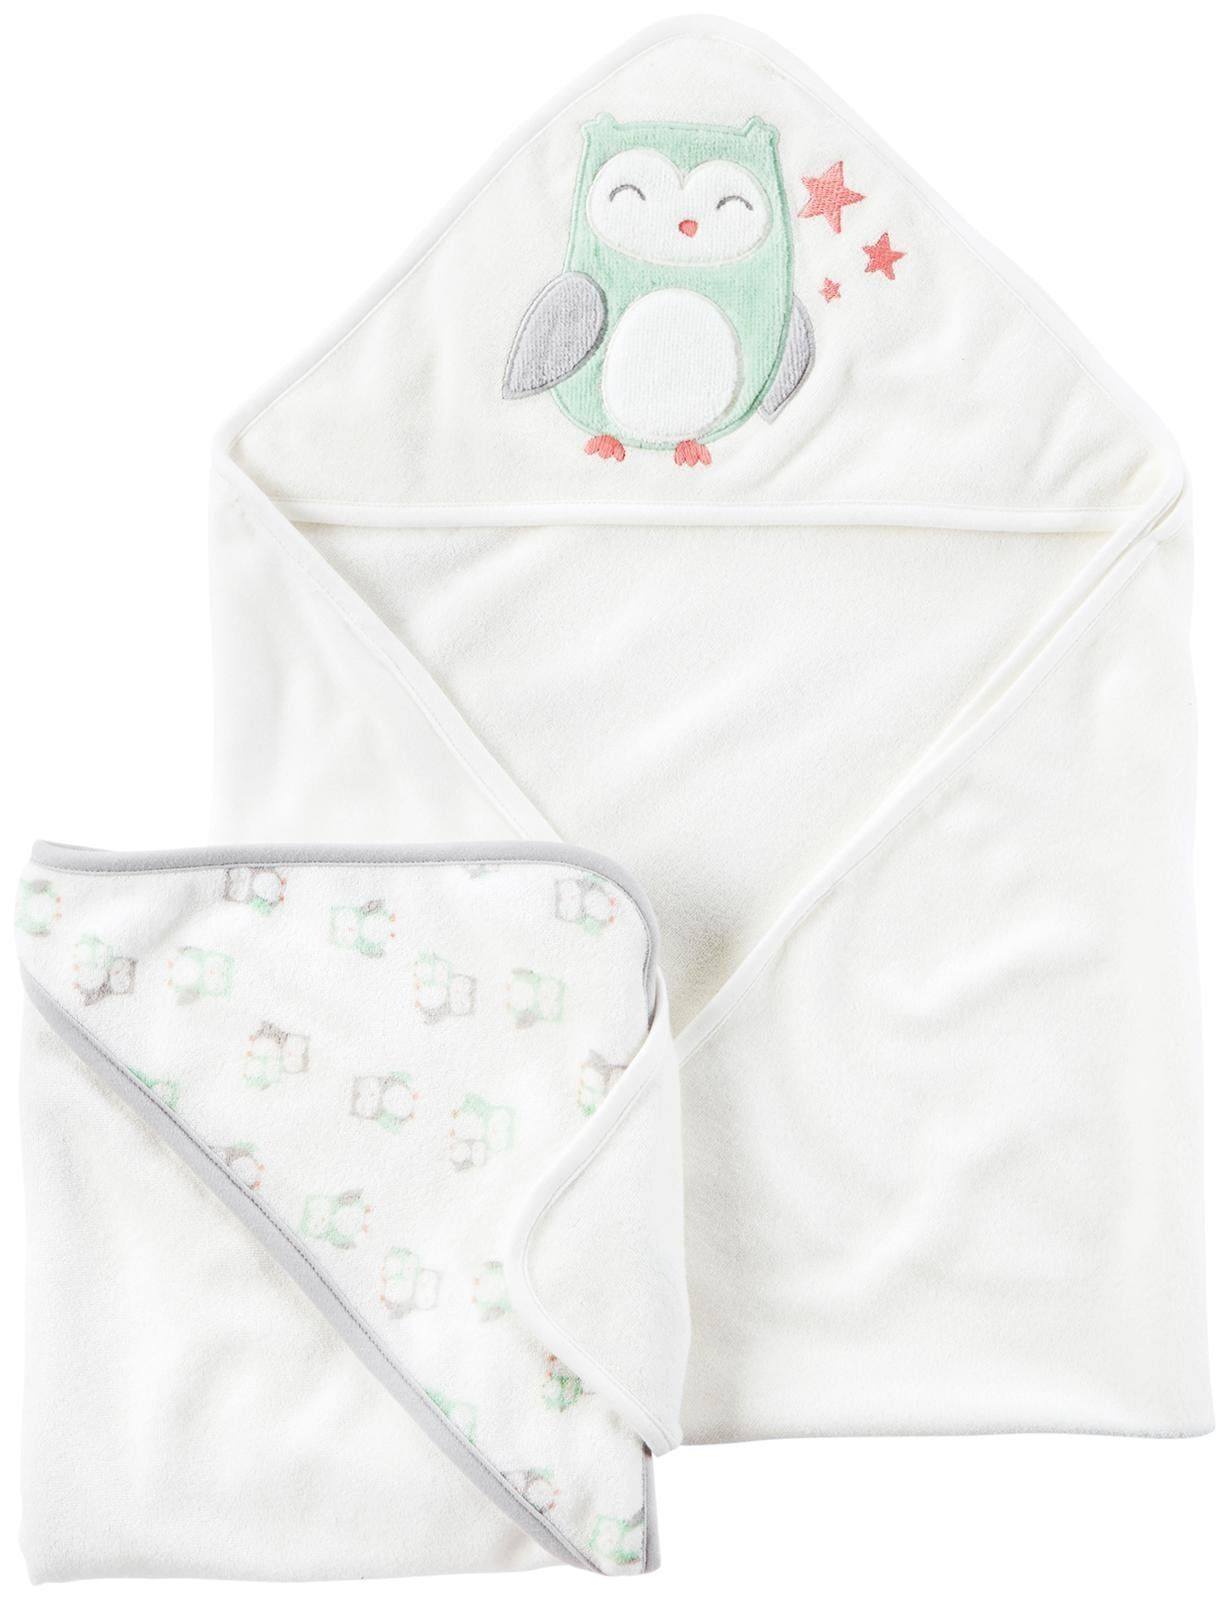 Carters Bath Towels D04g054 Assorted One Size Baby * You ...